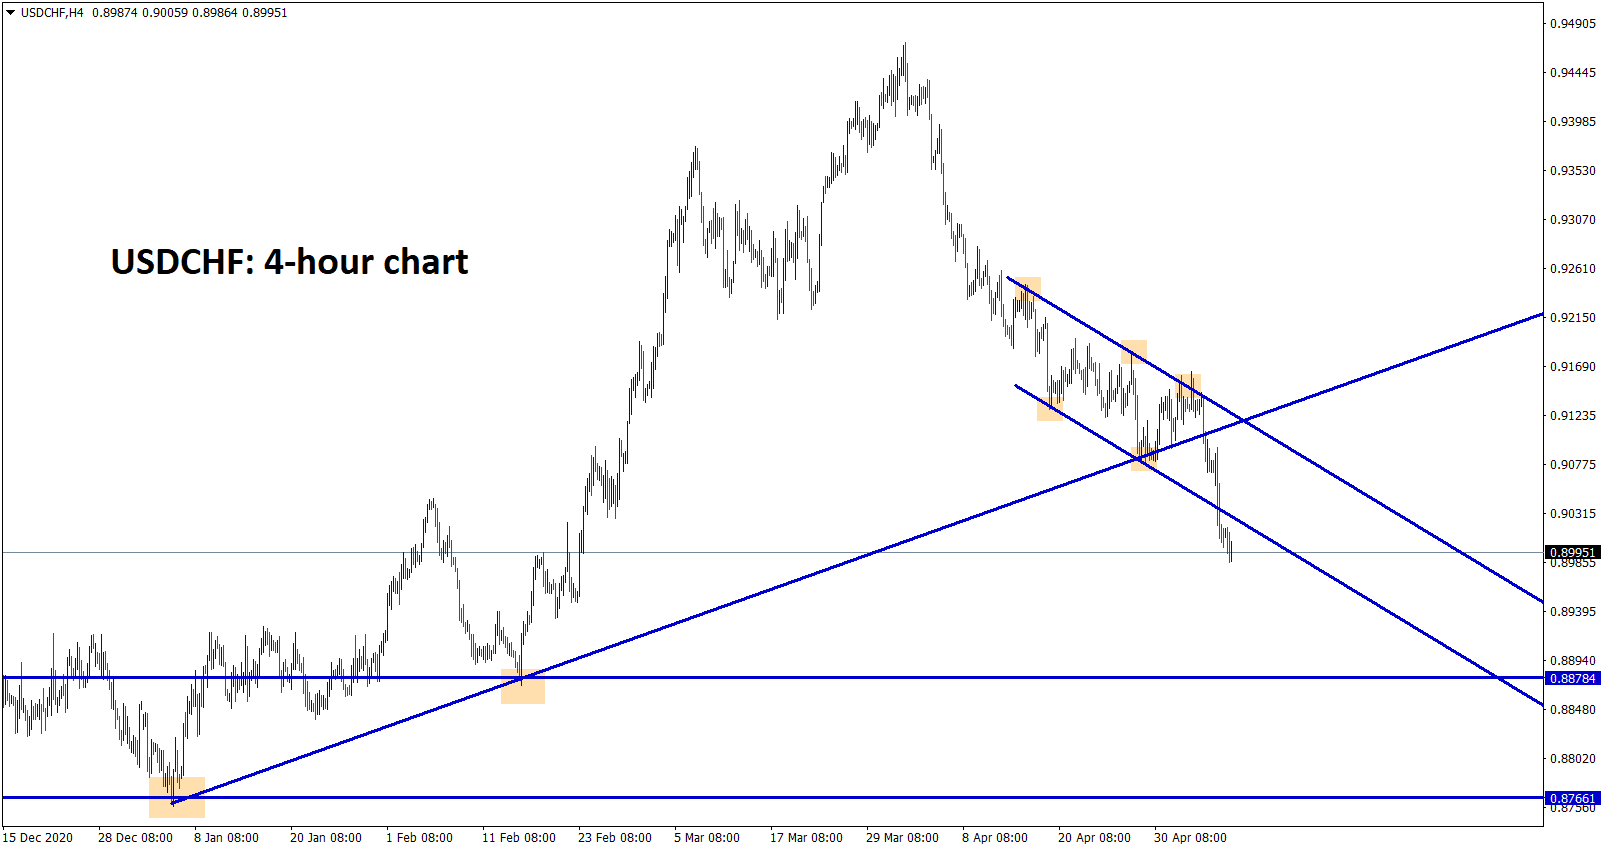 USDCHF has broken the low levels of the trend line and continues to fall to the next support levels